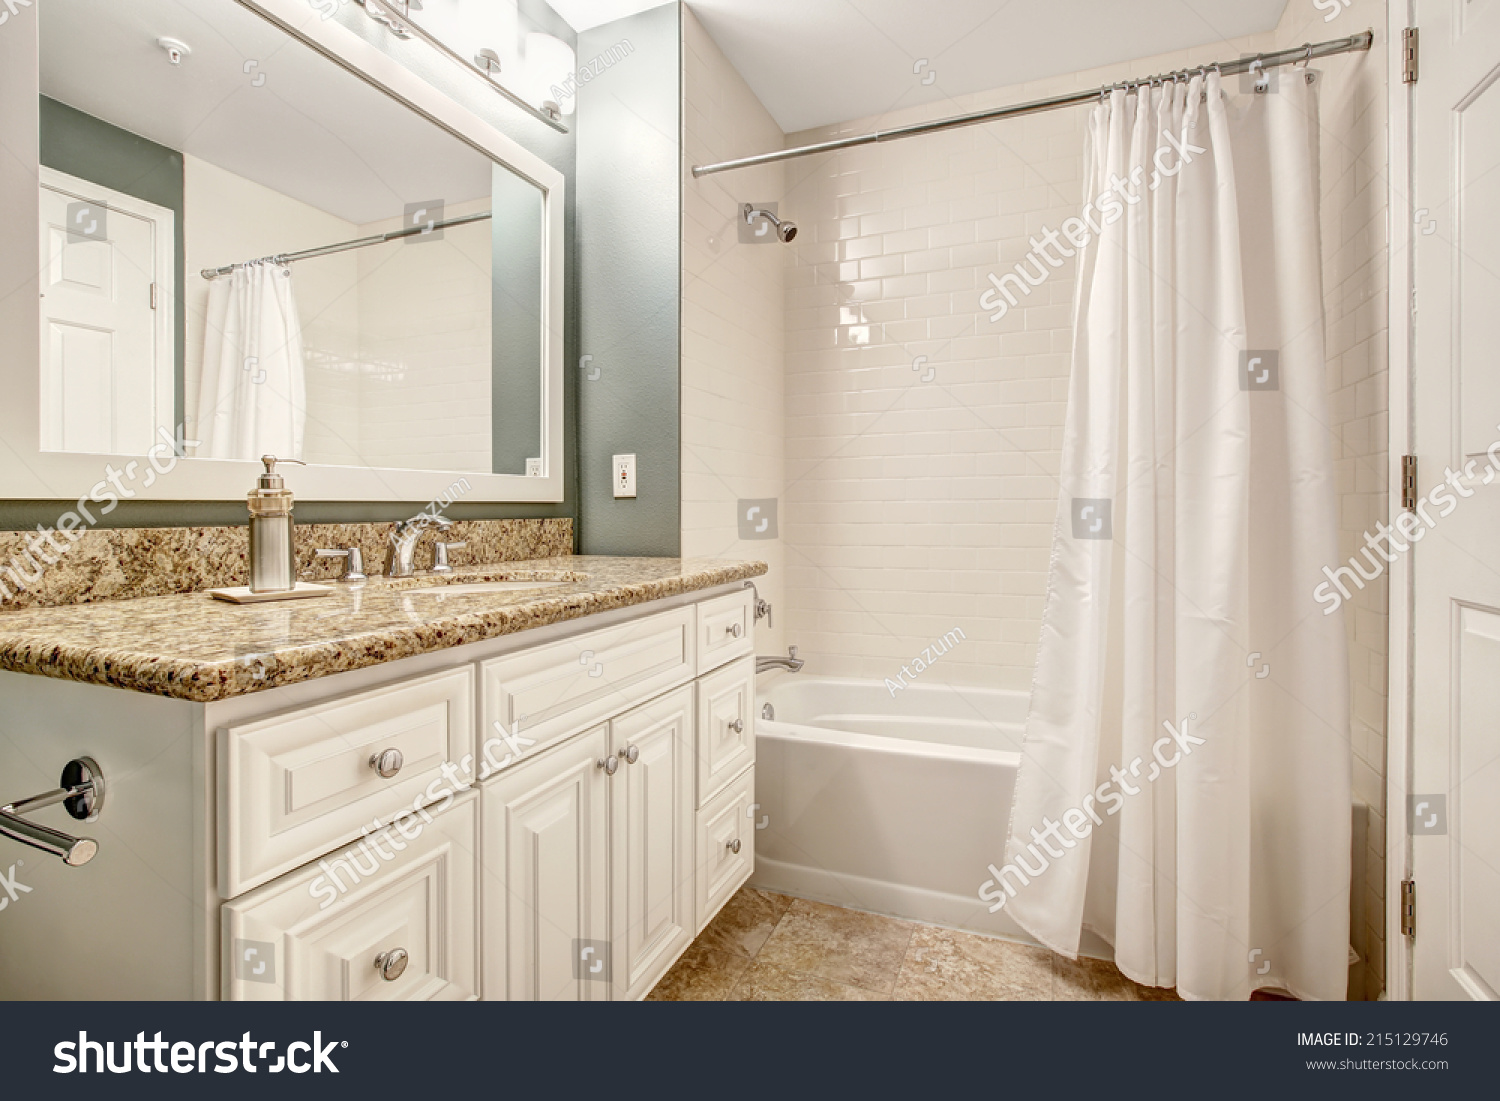 White Floor Bathroom Cabinet White Bathroom Vanity Cabinet Granite Top Stock Photo 215129746